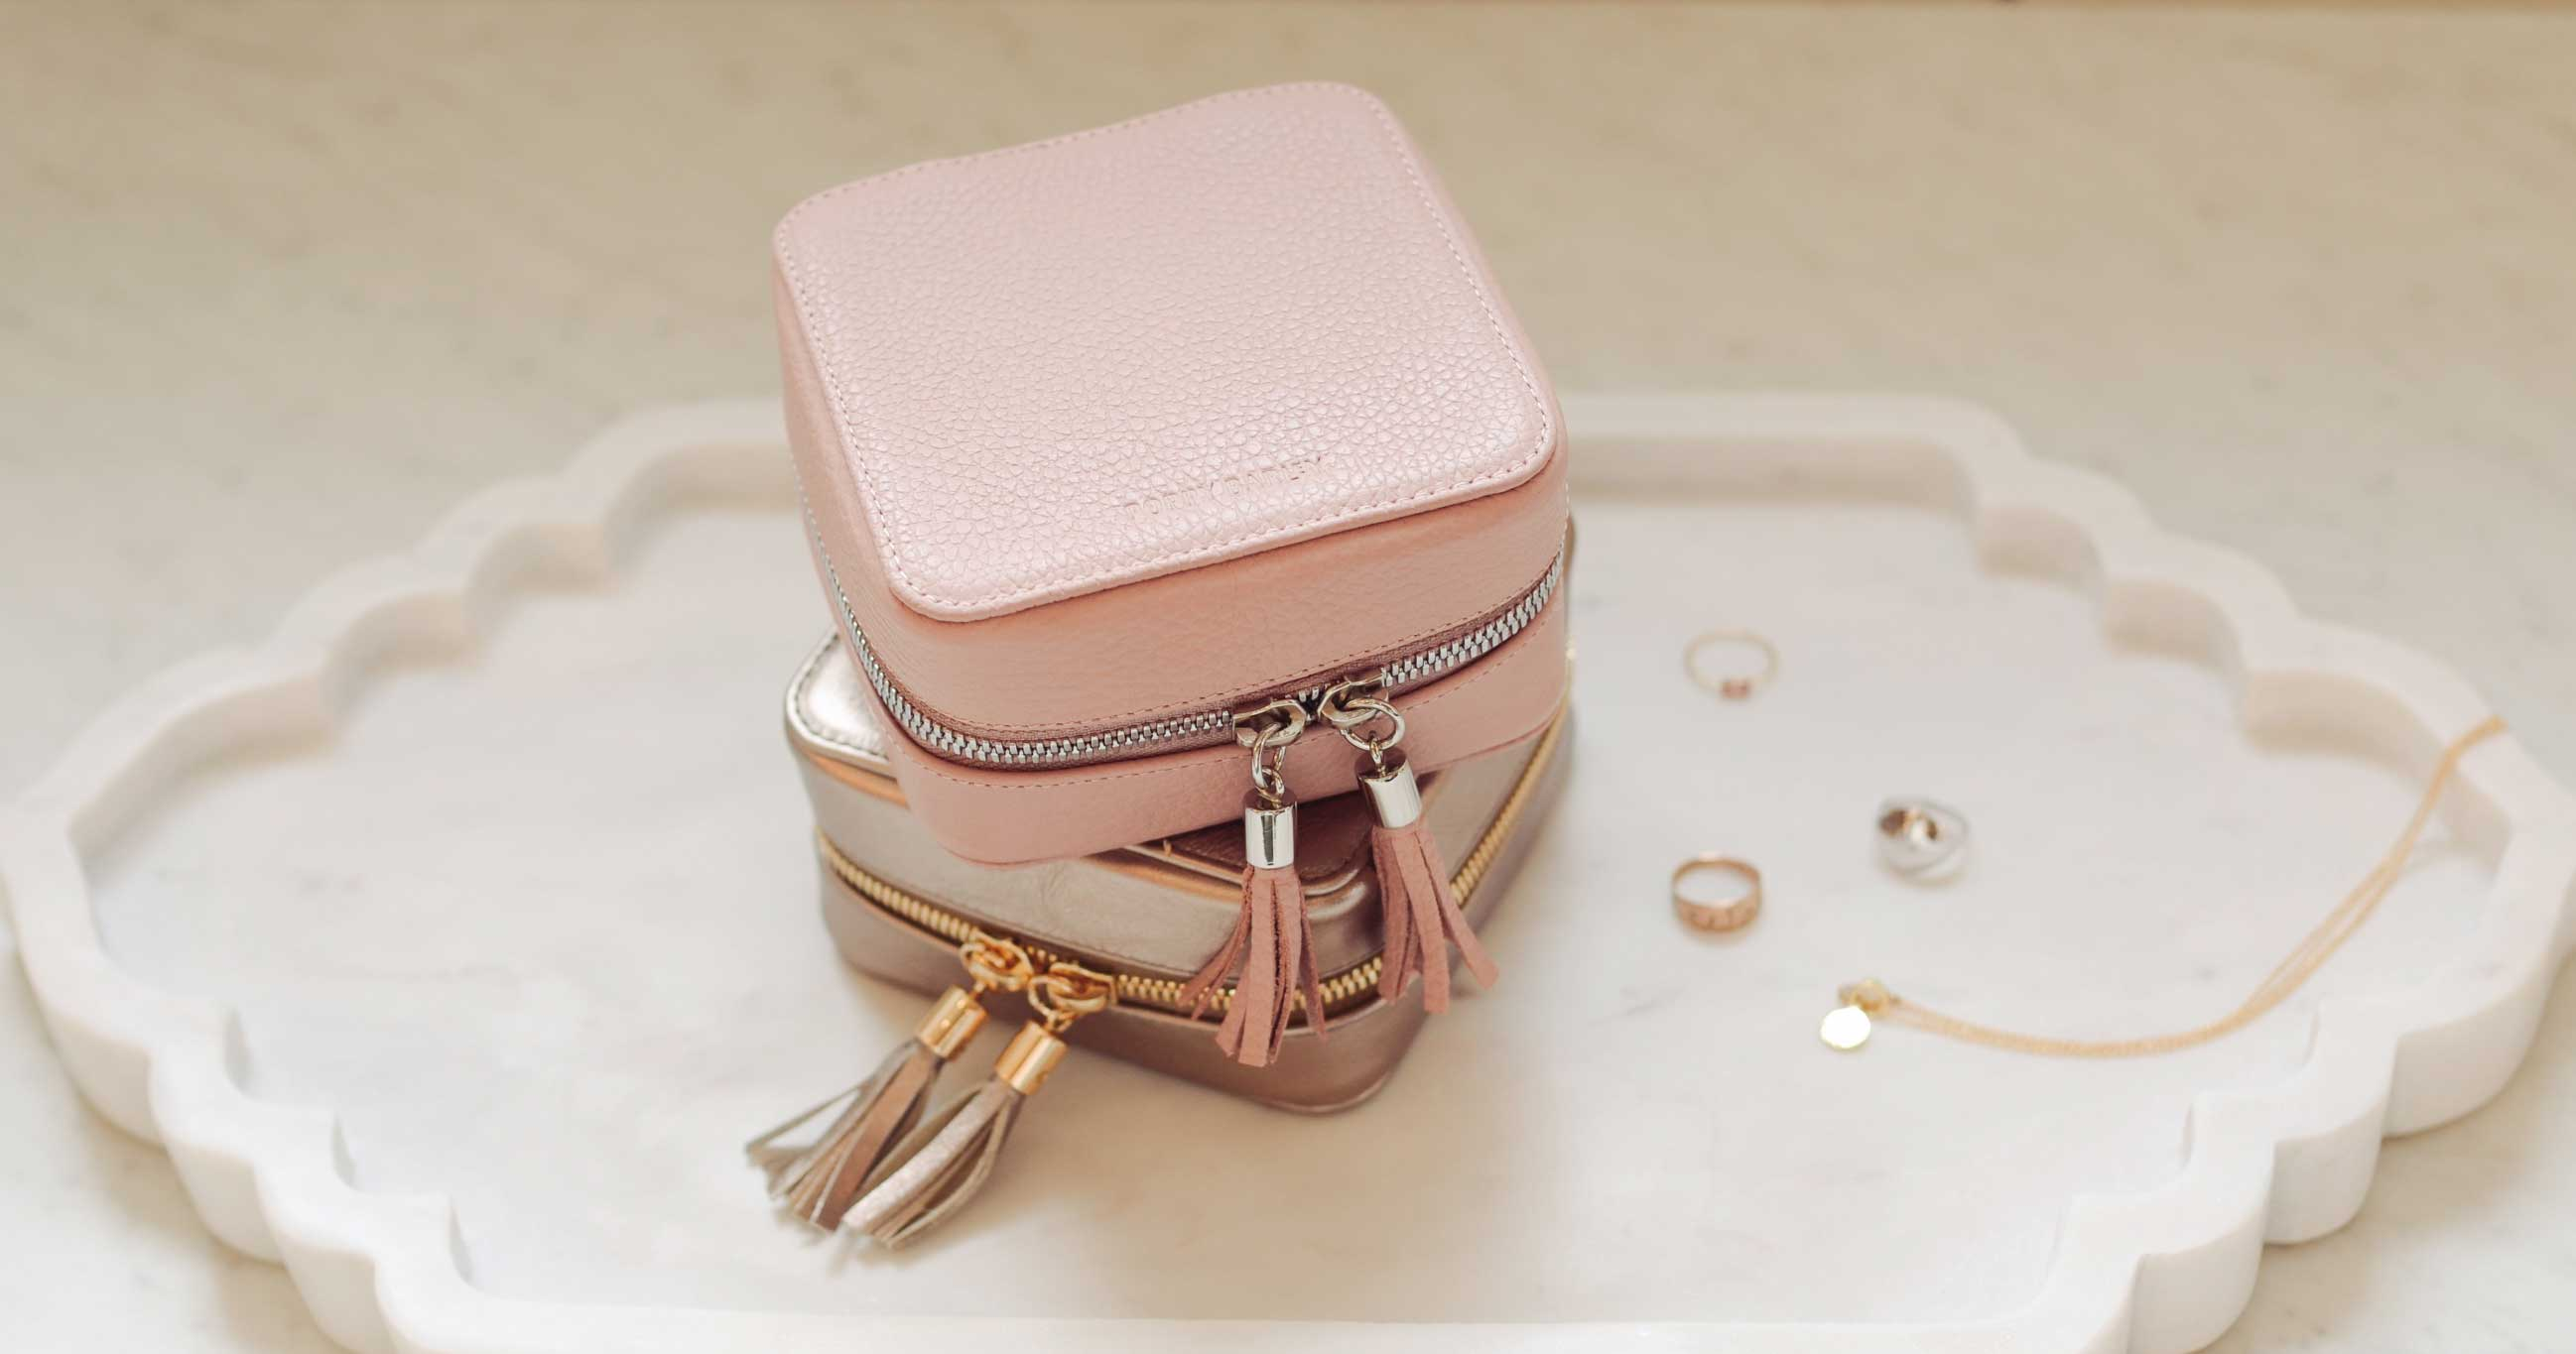 The Travel Jewelry Case - Poppy Barley